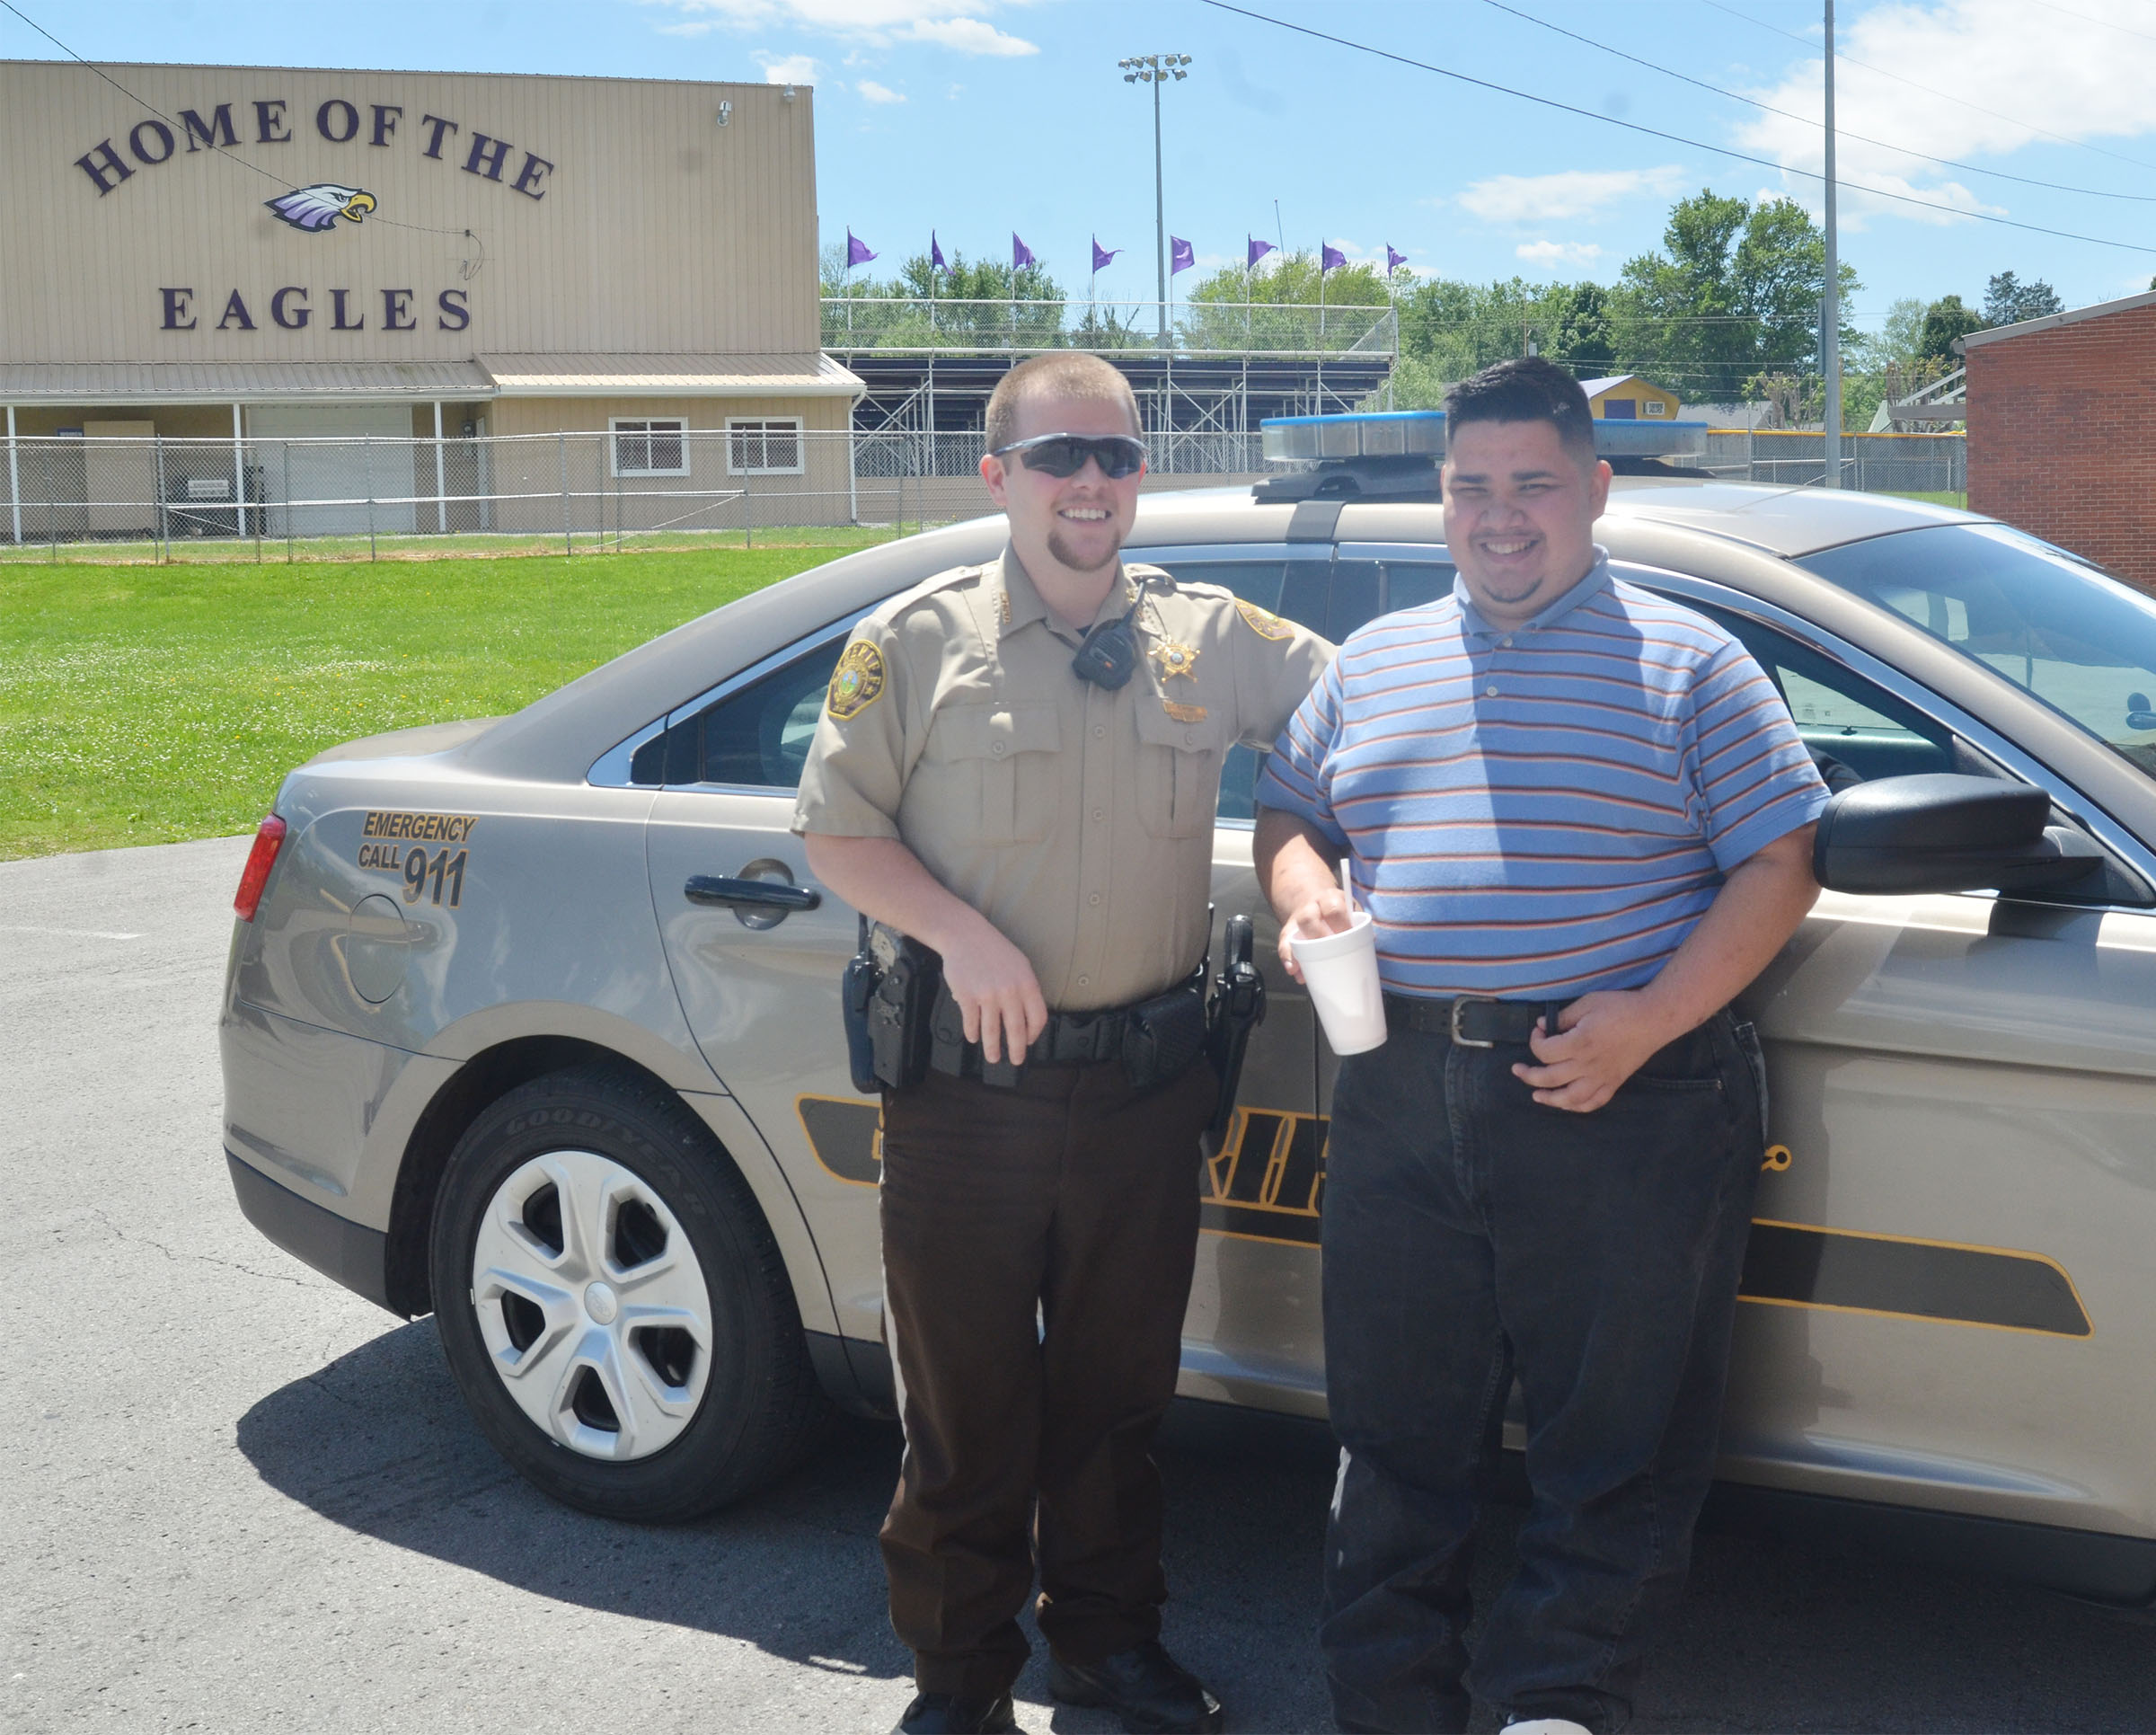 CHS senior Robert Tungate received a visit from special guest Taylor County Sheriff's Deputy Tyler Finn.